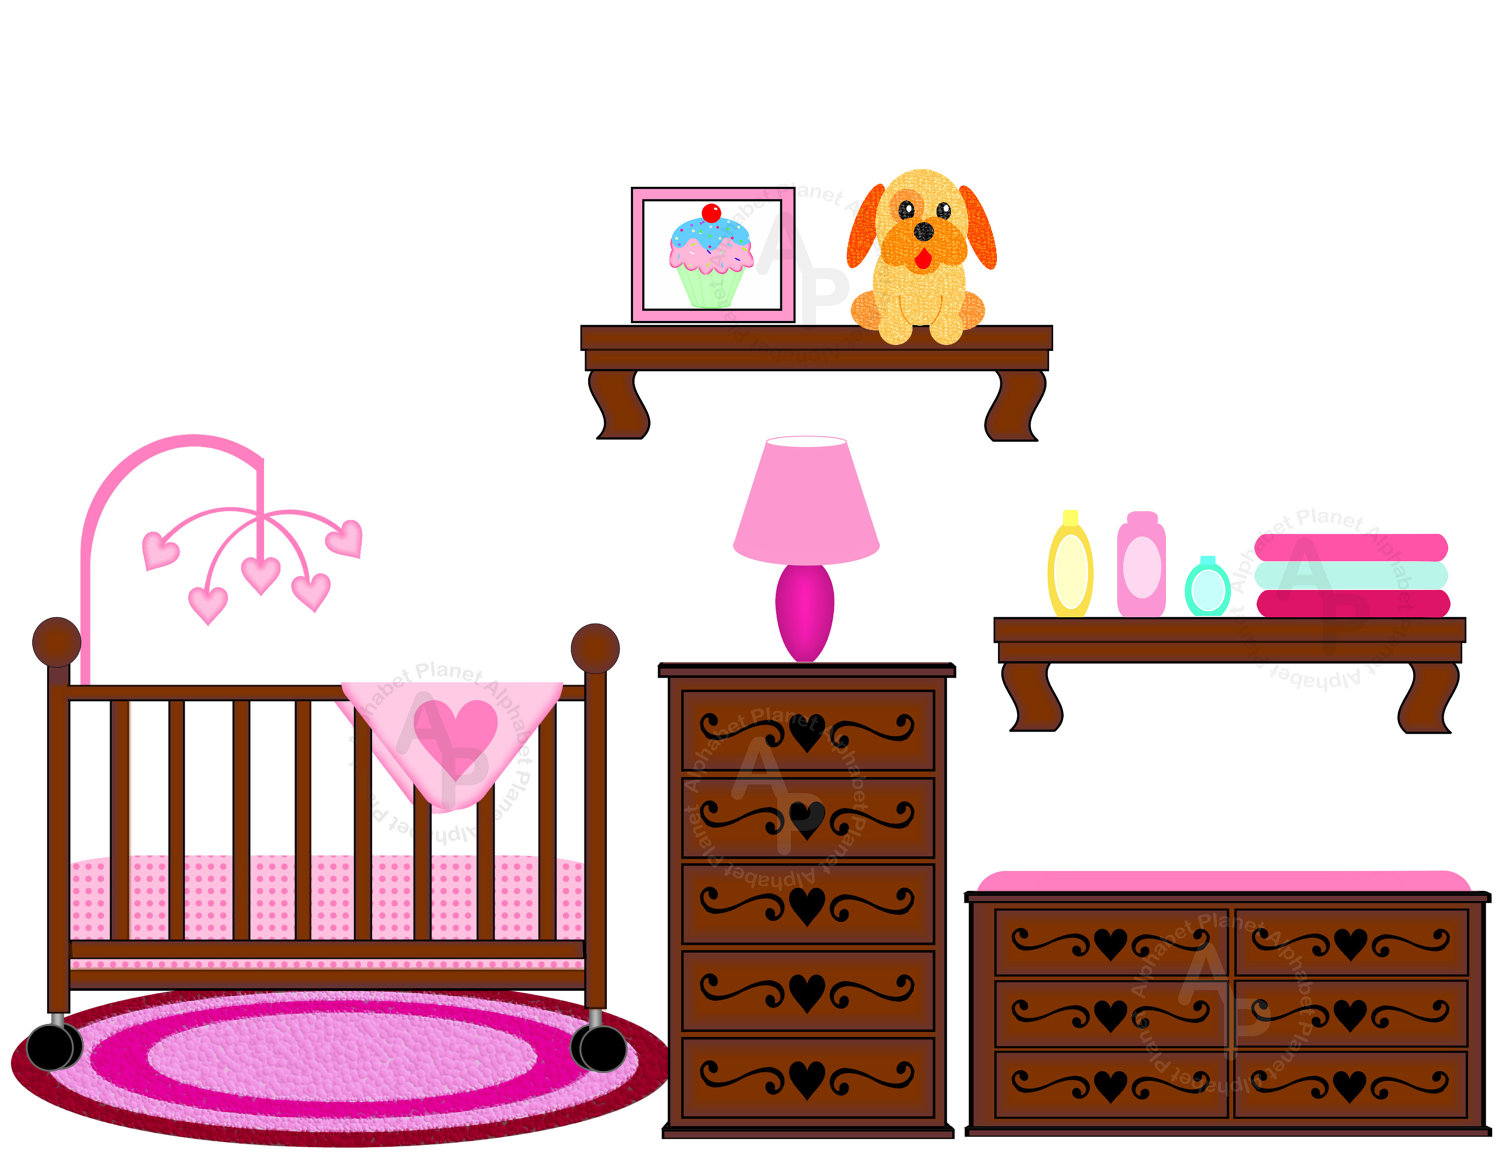 Pink clipart baby crib Images Crib Clipart crib%20clipart Free